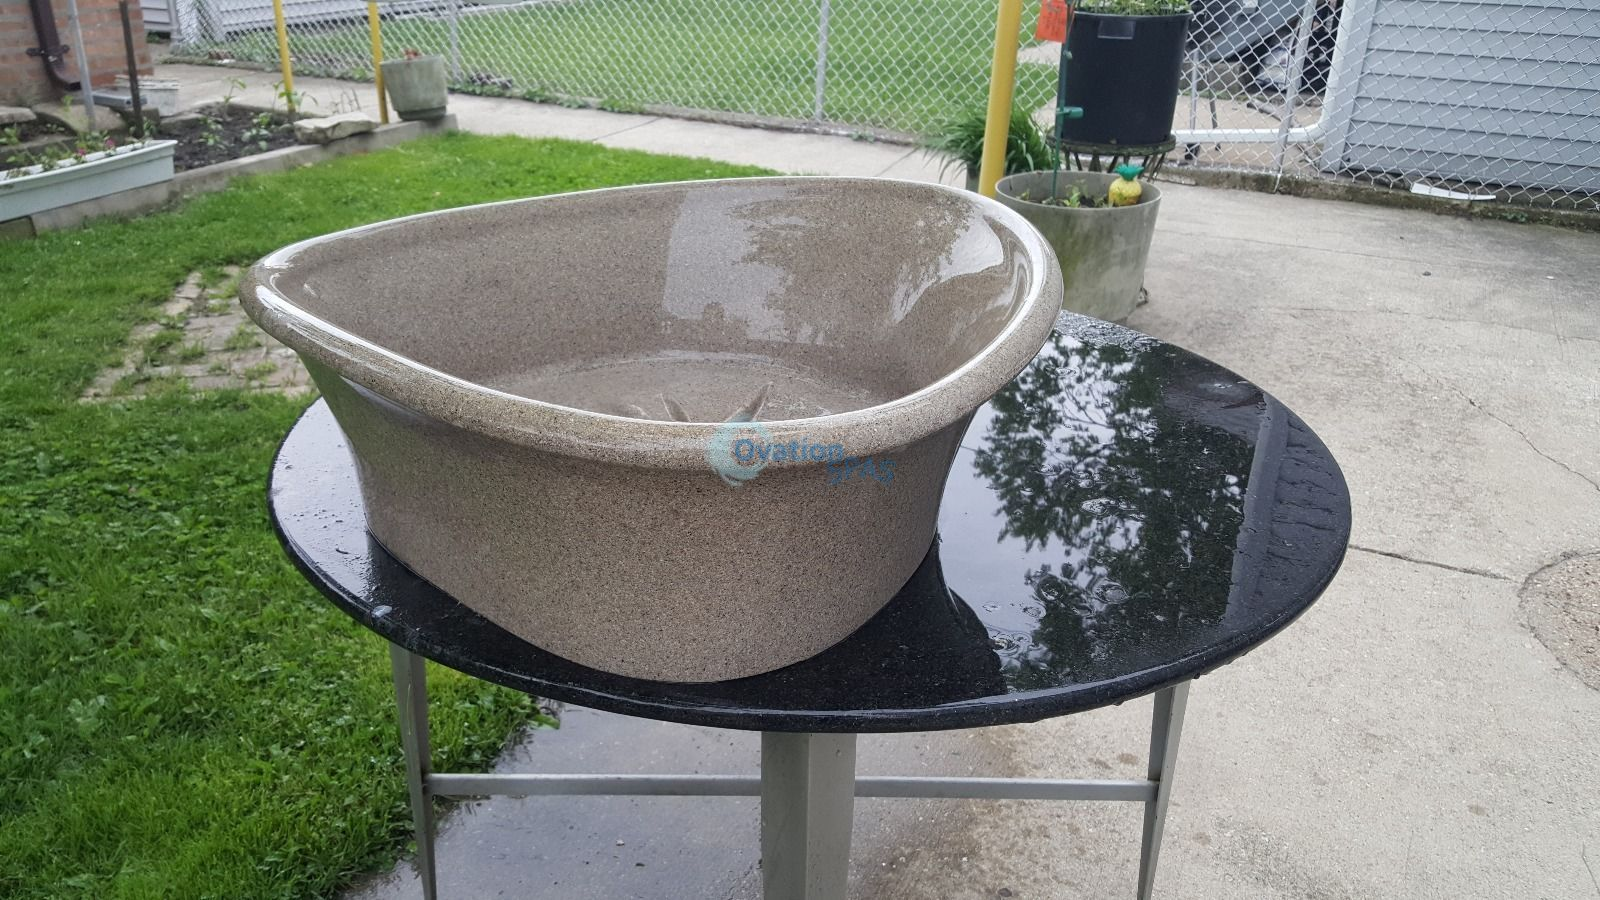 European Touch Pedicure Spa Cultured Stone Bowl